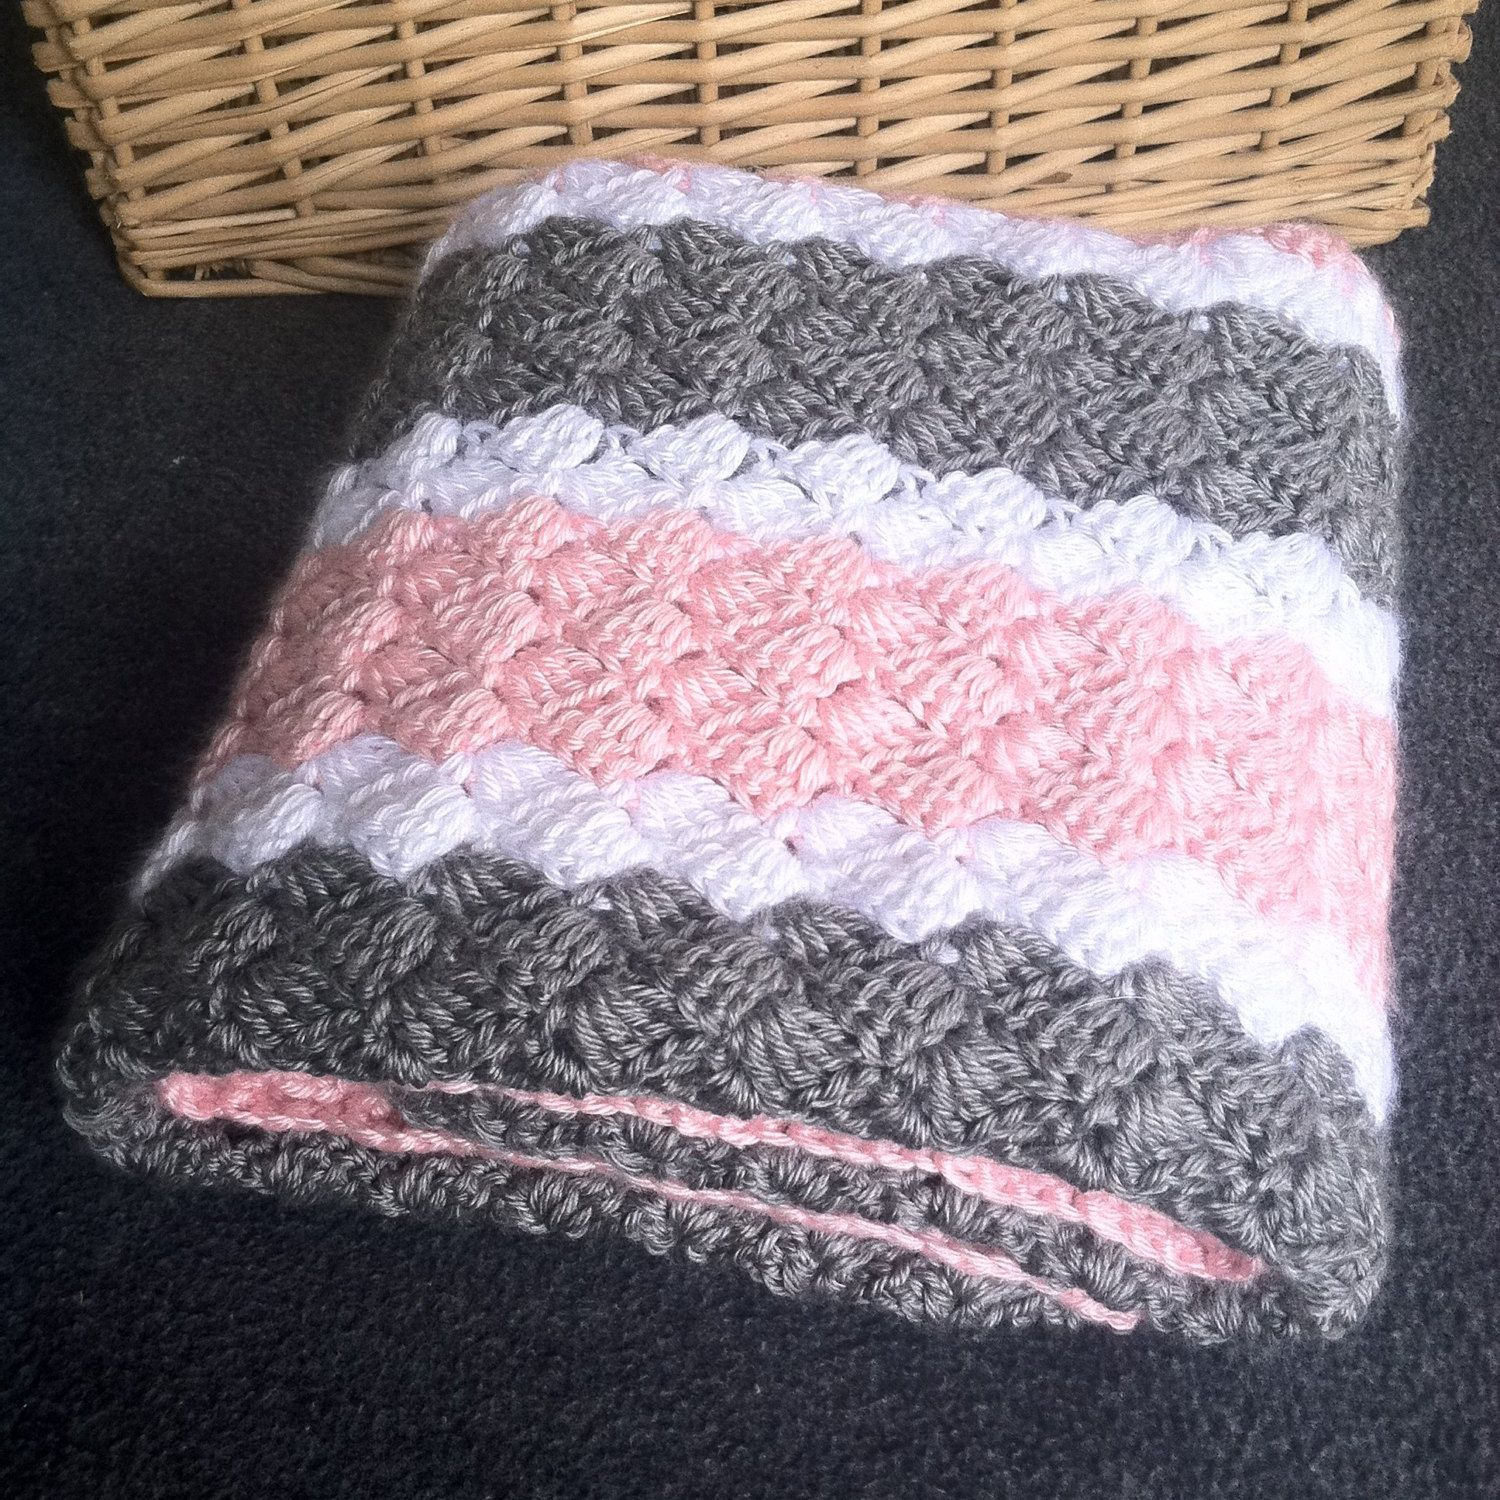 Crochet Girl Baby Blanket - Hand Made Pink, Grey and White ...